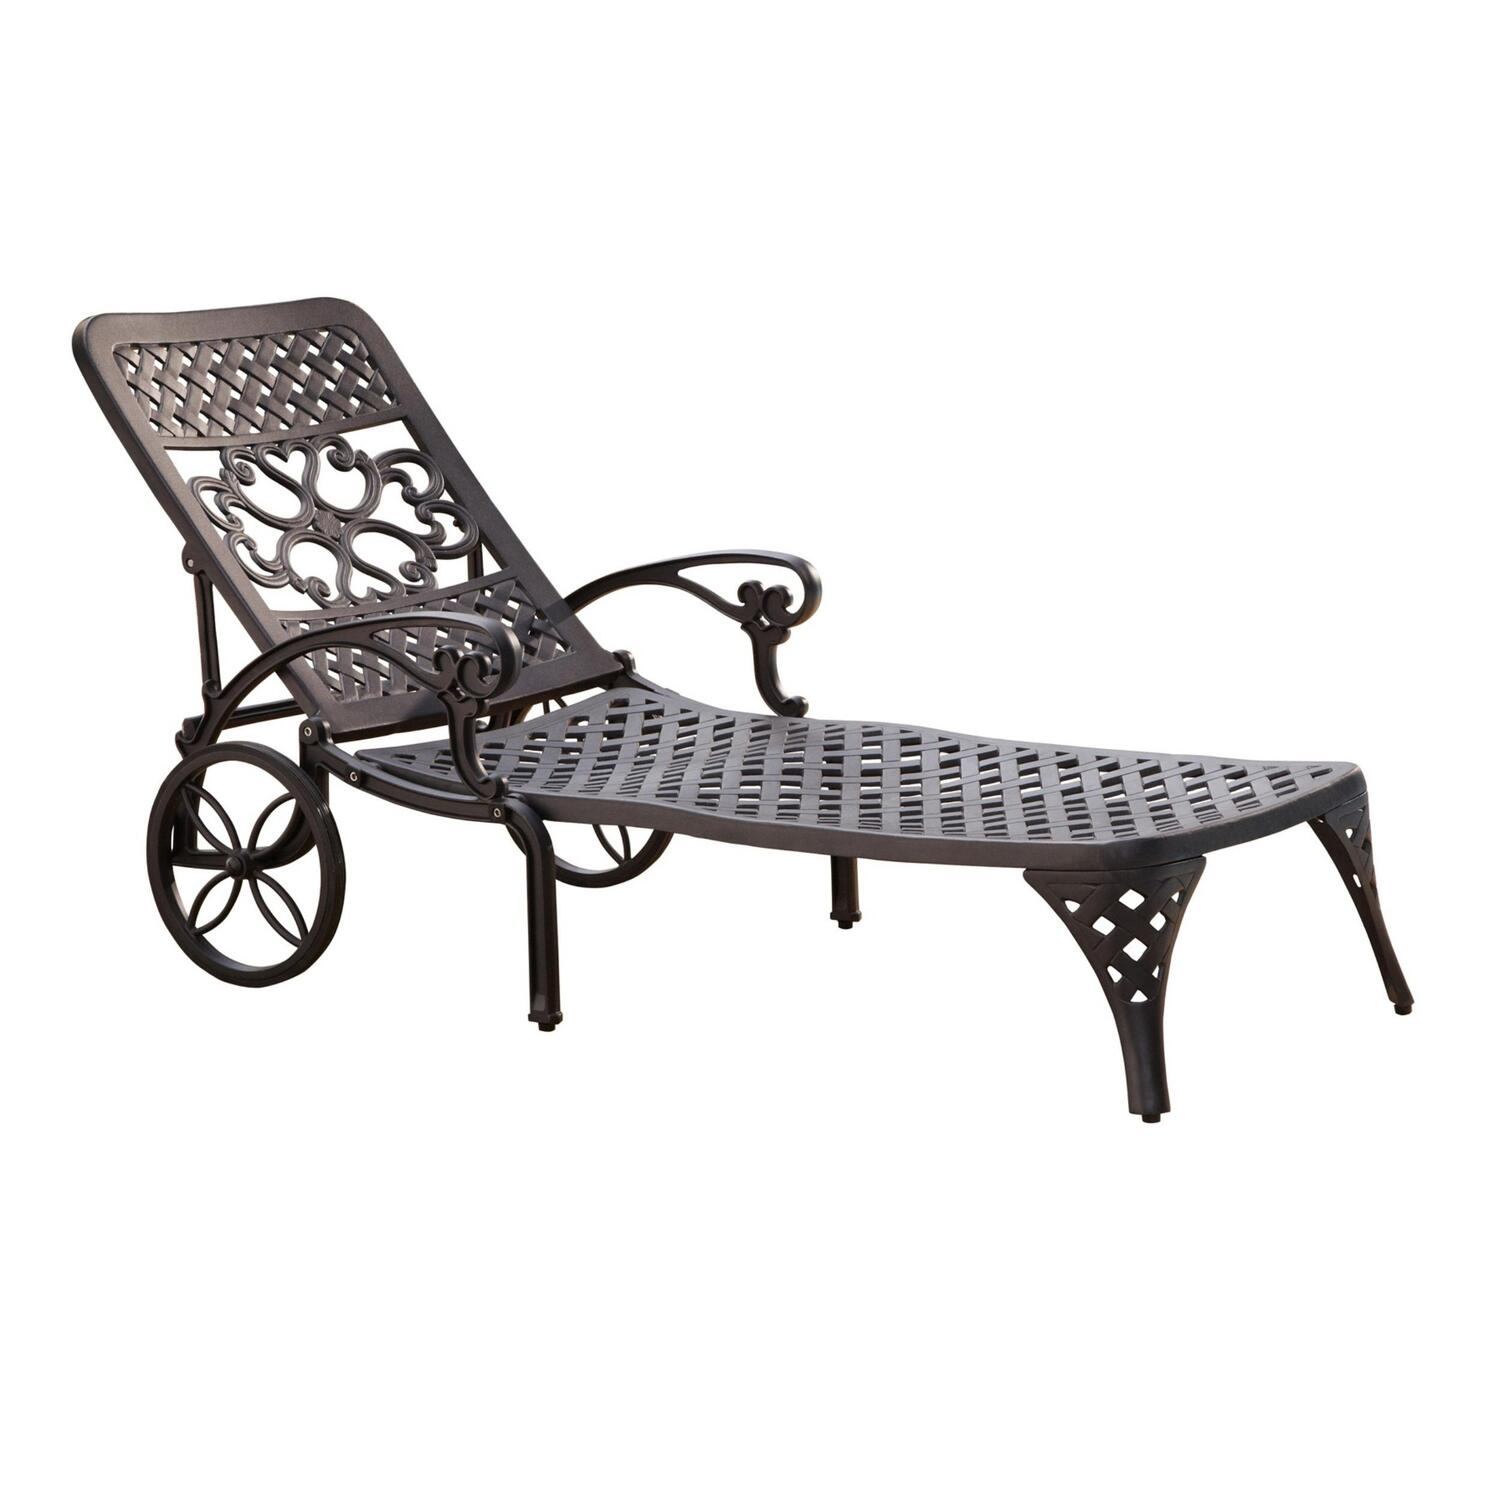 Home Styles Biscayne Chaise Lounge Chair by OJ merce